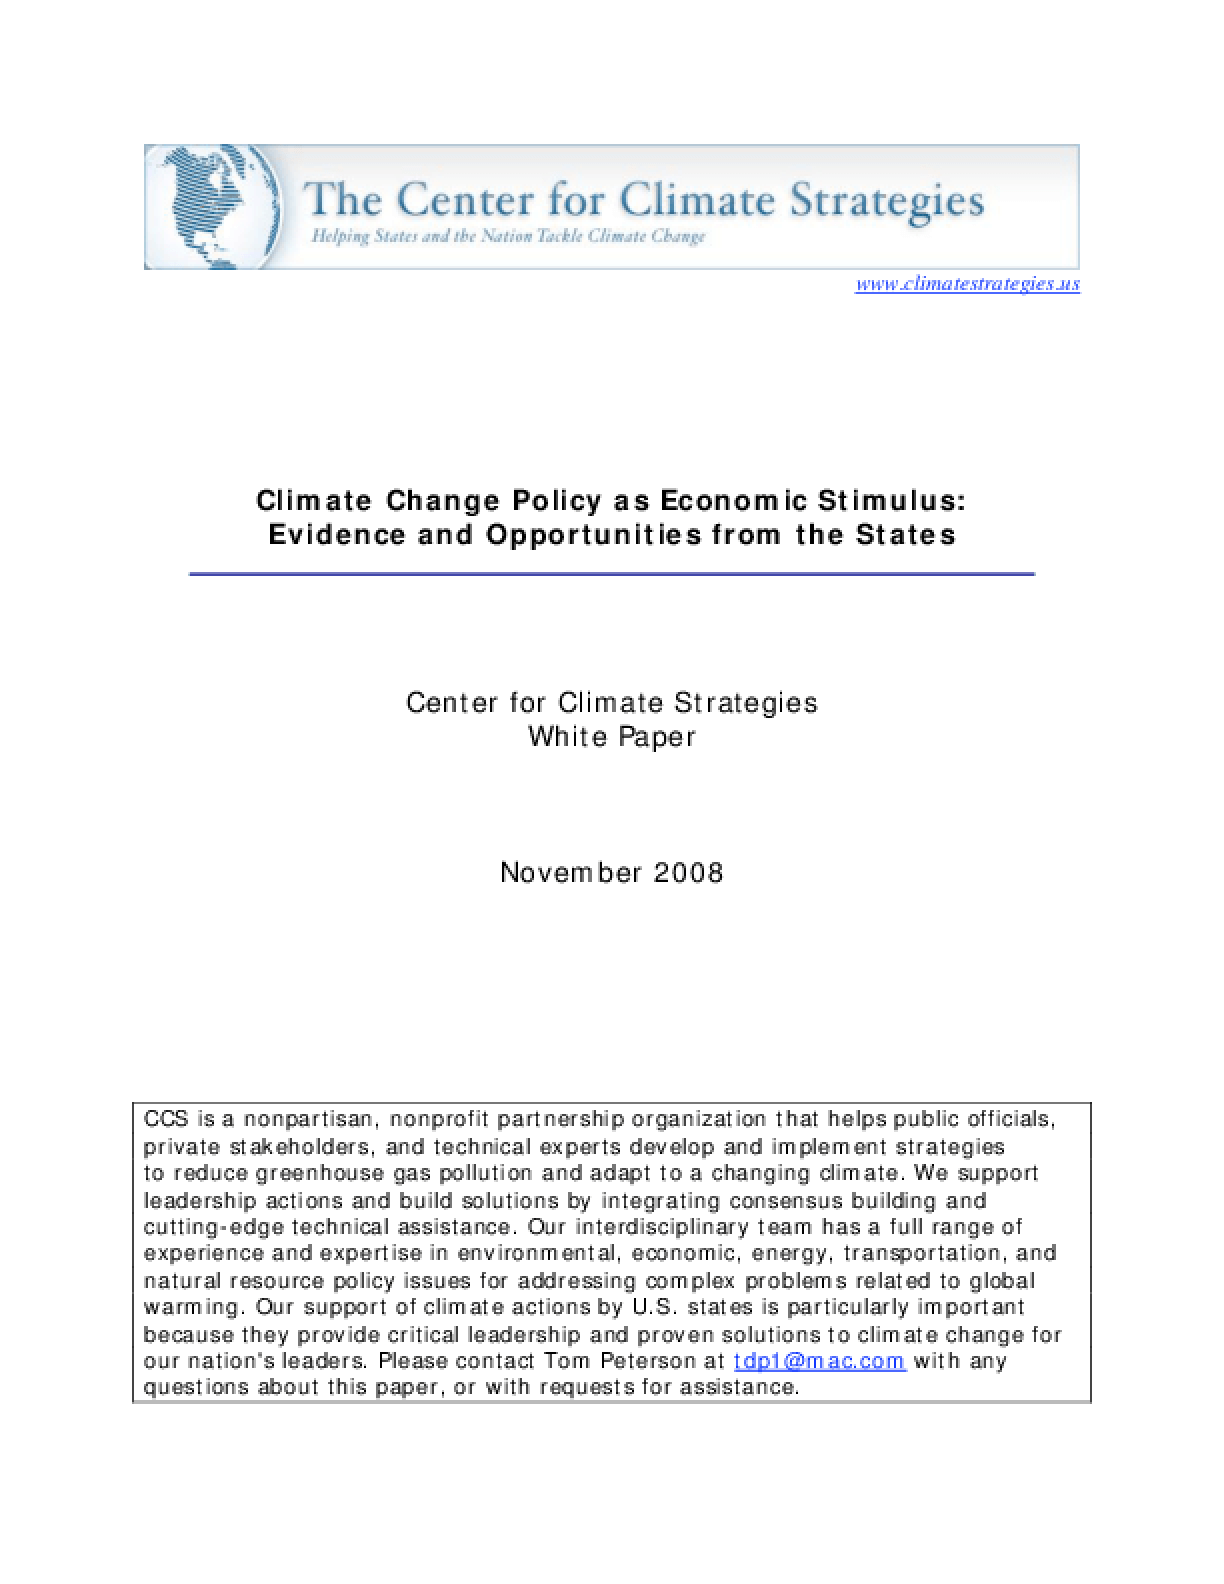 Climate Change Policy as Economic Stimulus: Evidence and Opportunities From the States